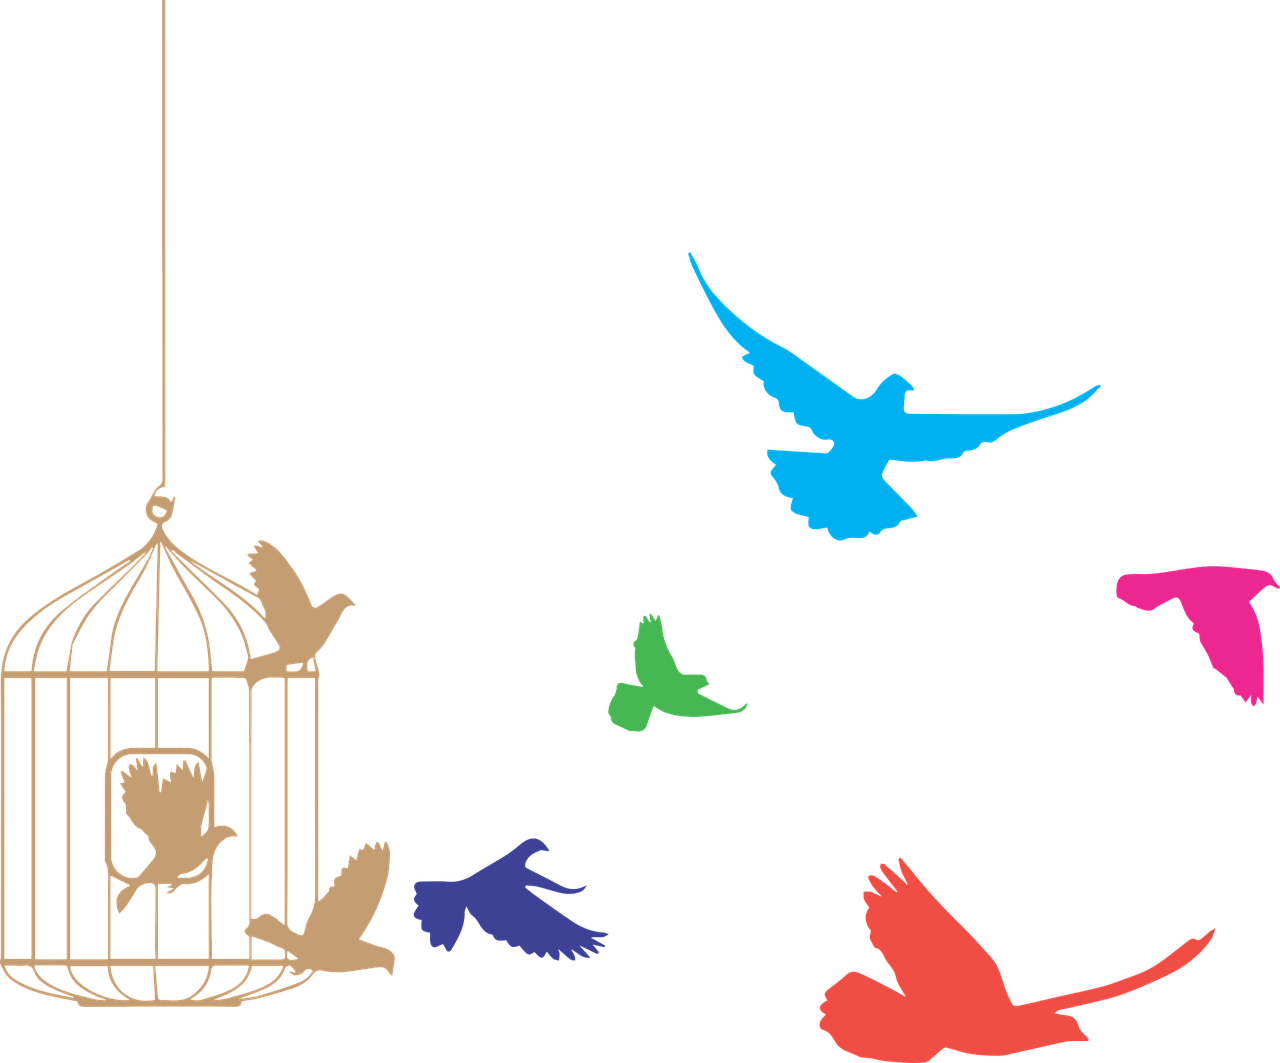 Birds Flying From Cage Clipart transparent PNG.